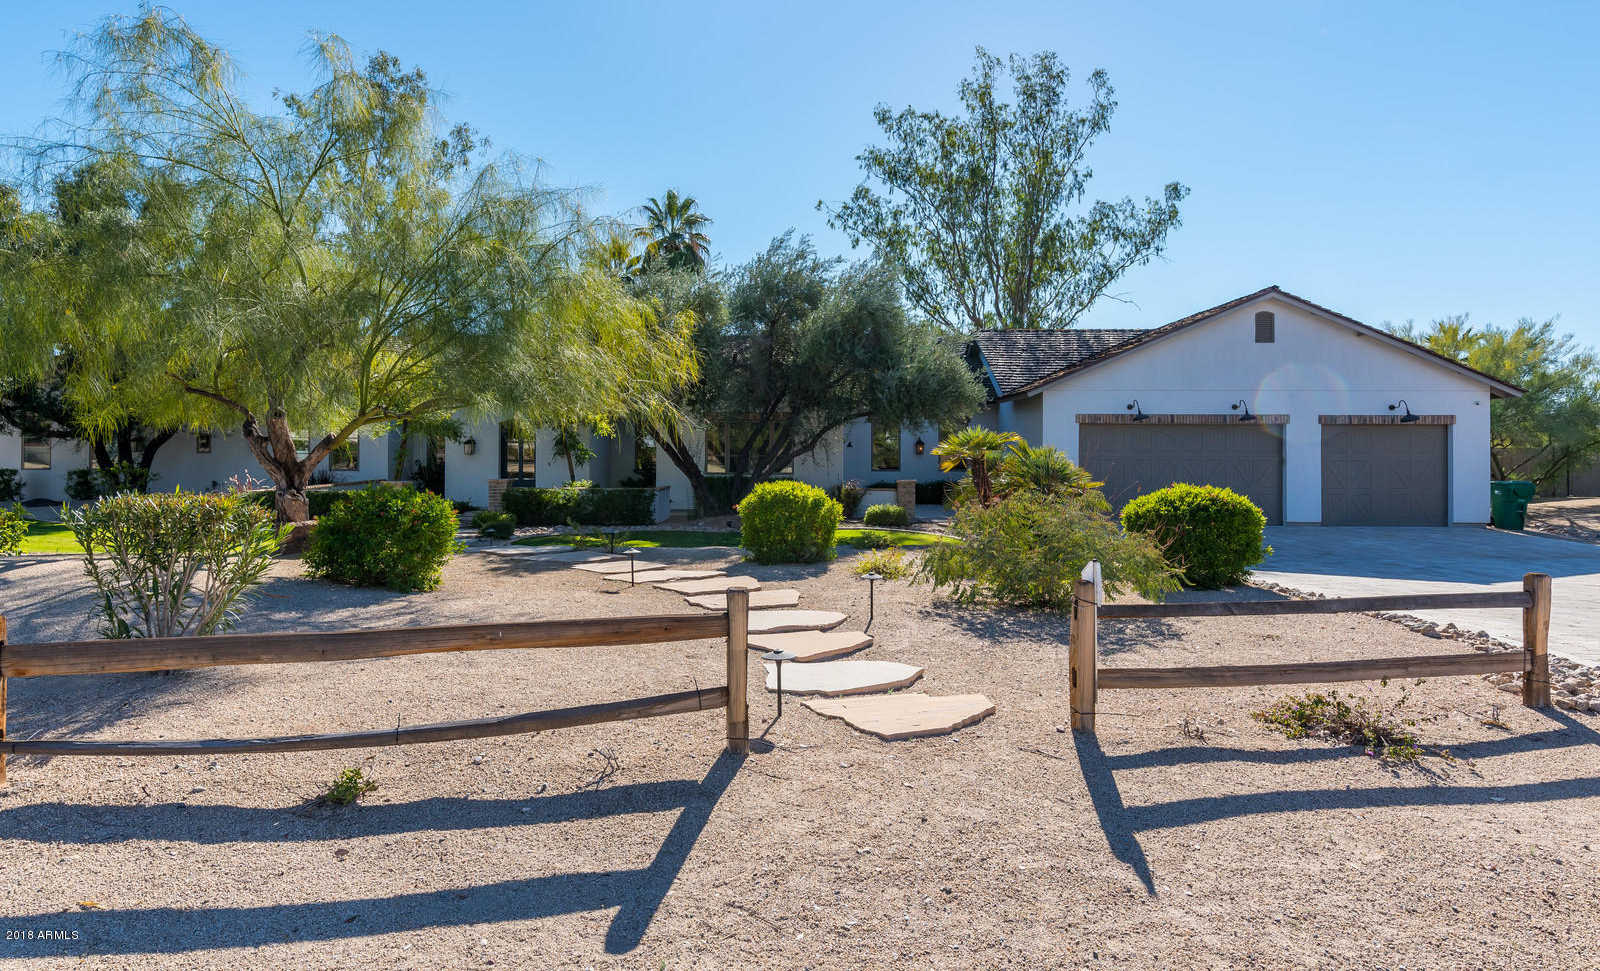 $2,400,000 - 5Br/5Ba - Home for Sale in San Miguel Estates, Paradise Valley